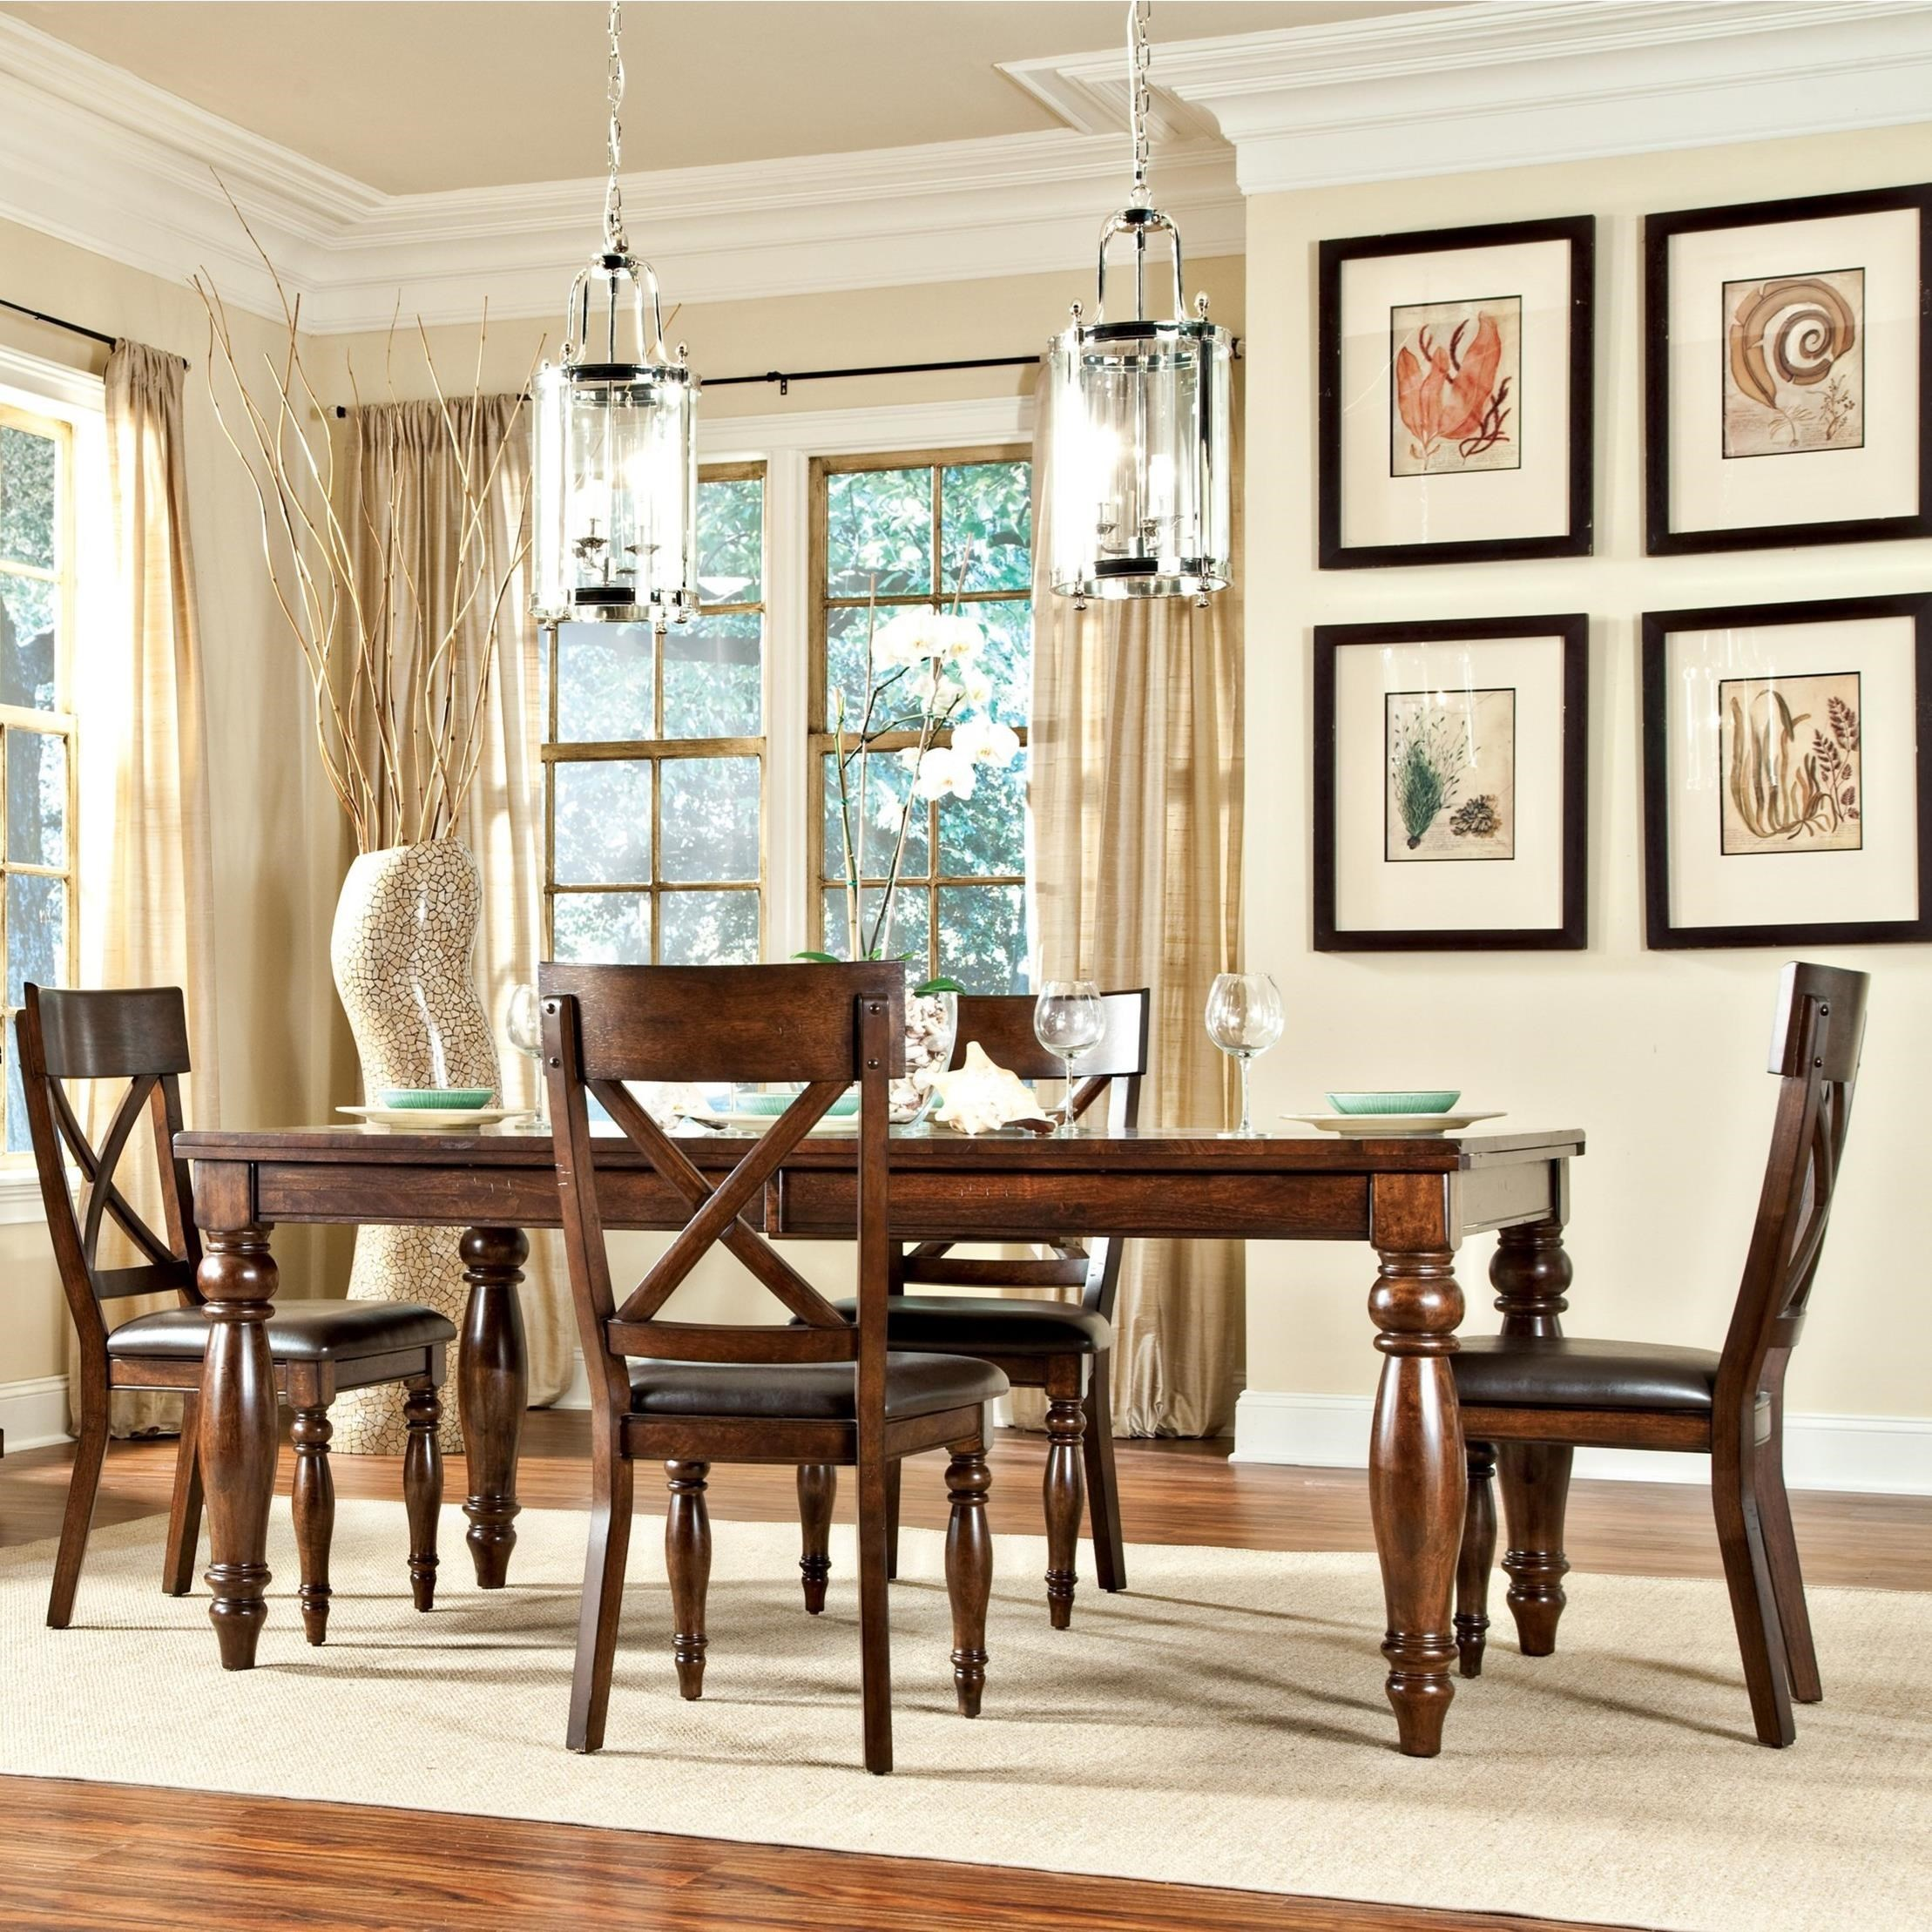 Kingston 5 Piece Table And Chair Set By Intercon At Rifeu0027s Home Furniture